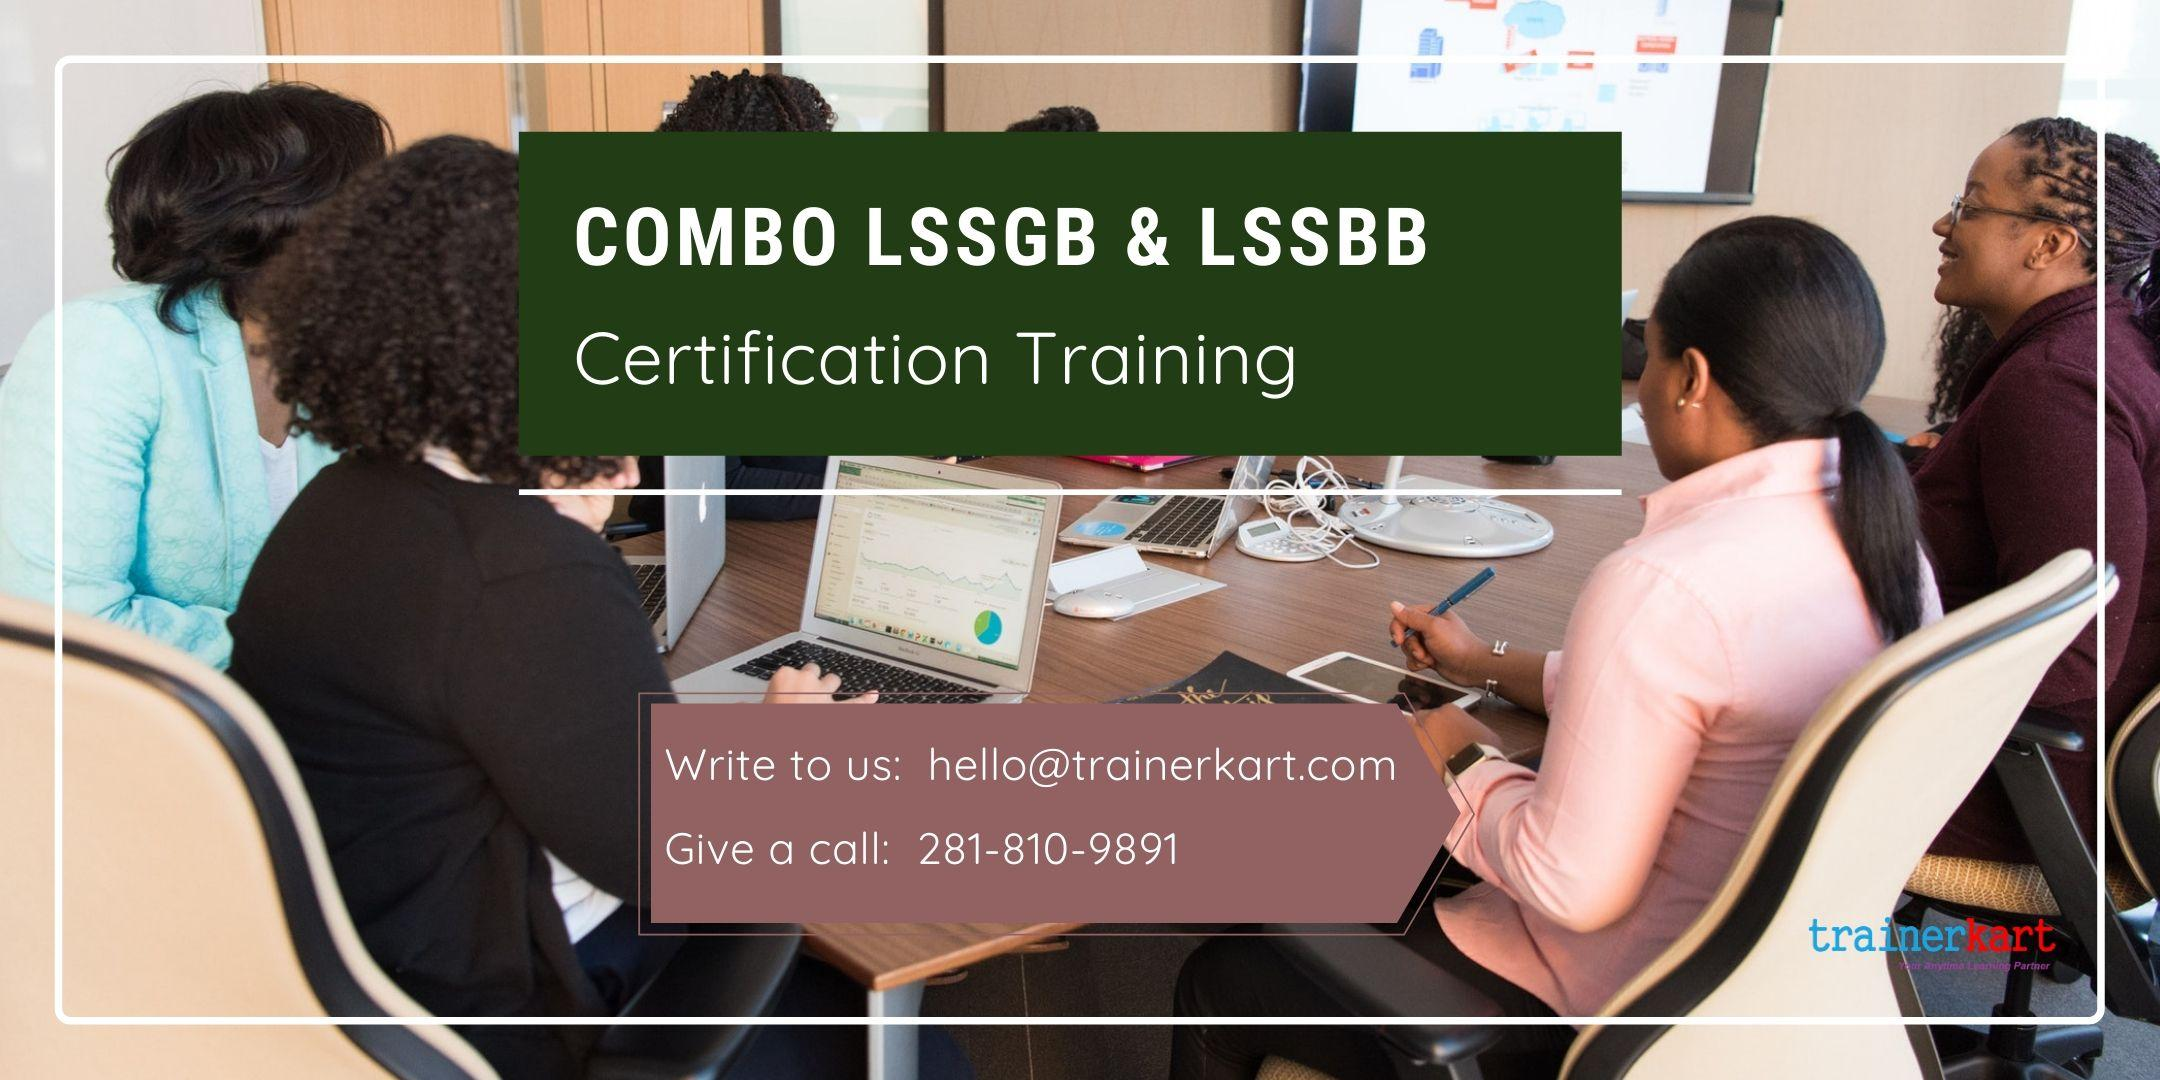 Combo LSSGB & LSSBB 4 day classroom Training in Tampa, FL